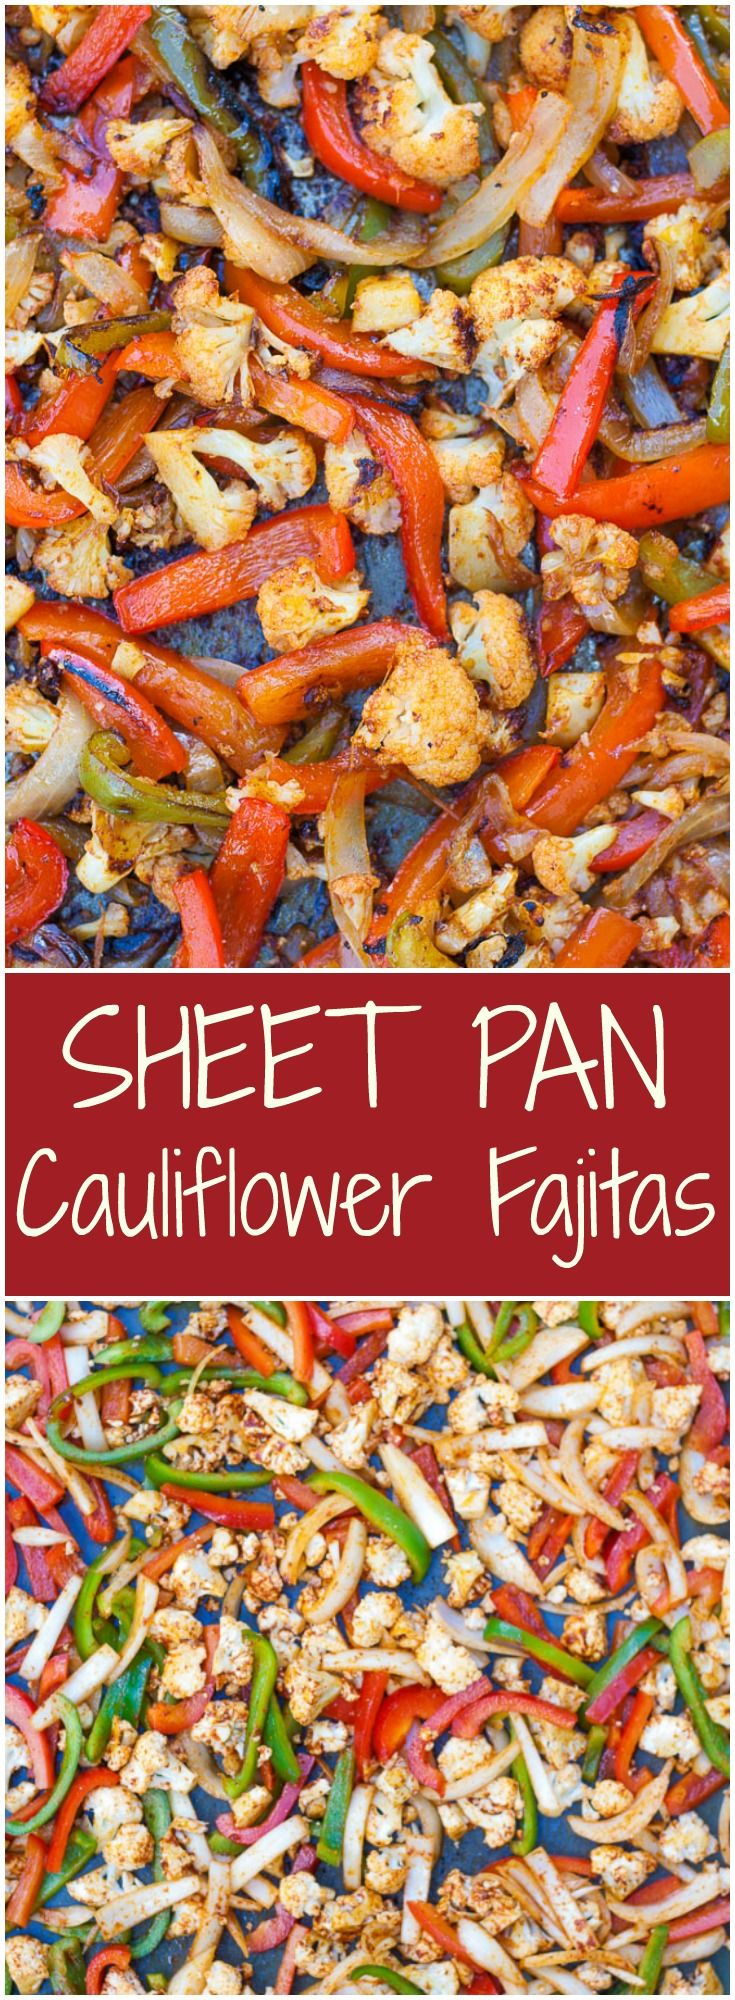 Sheet Pan Cauliflower Fajitas Vegetarian Fajitas